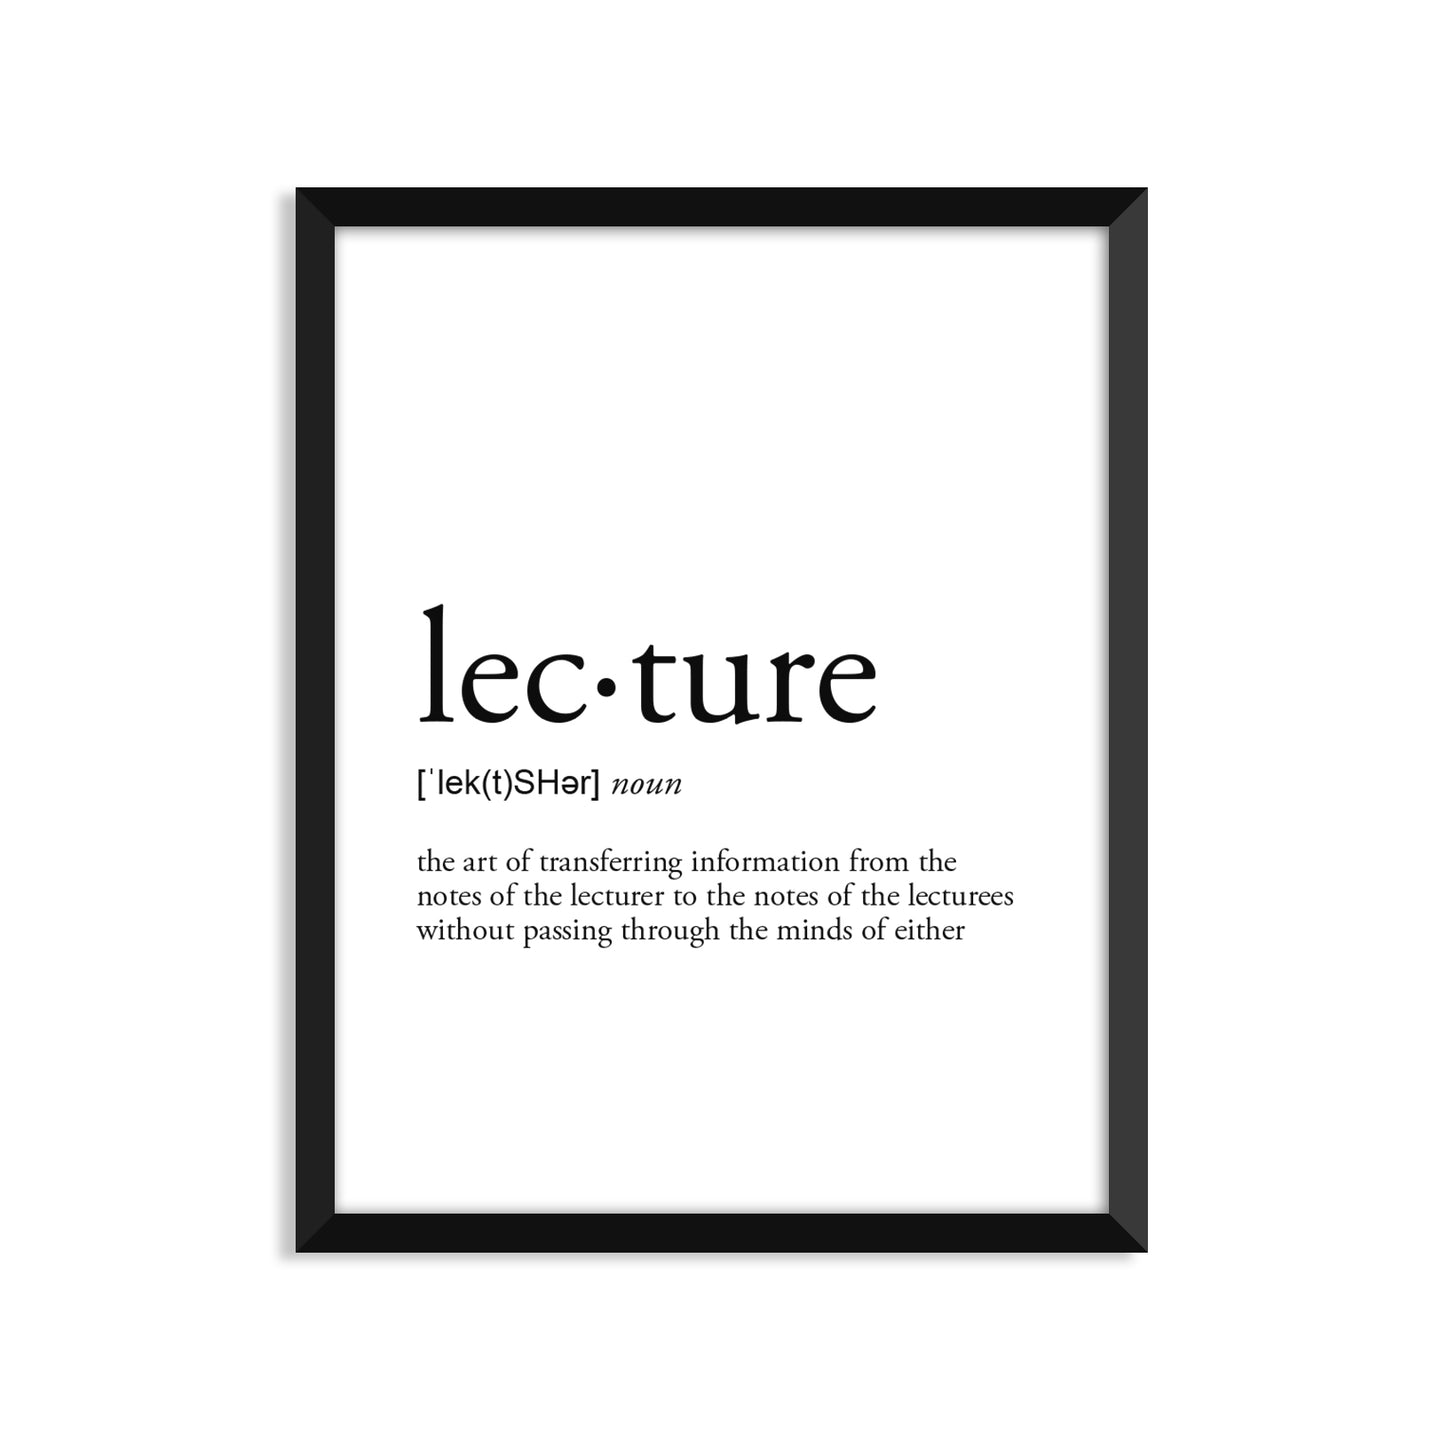 Lecture definition art print or greeting card